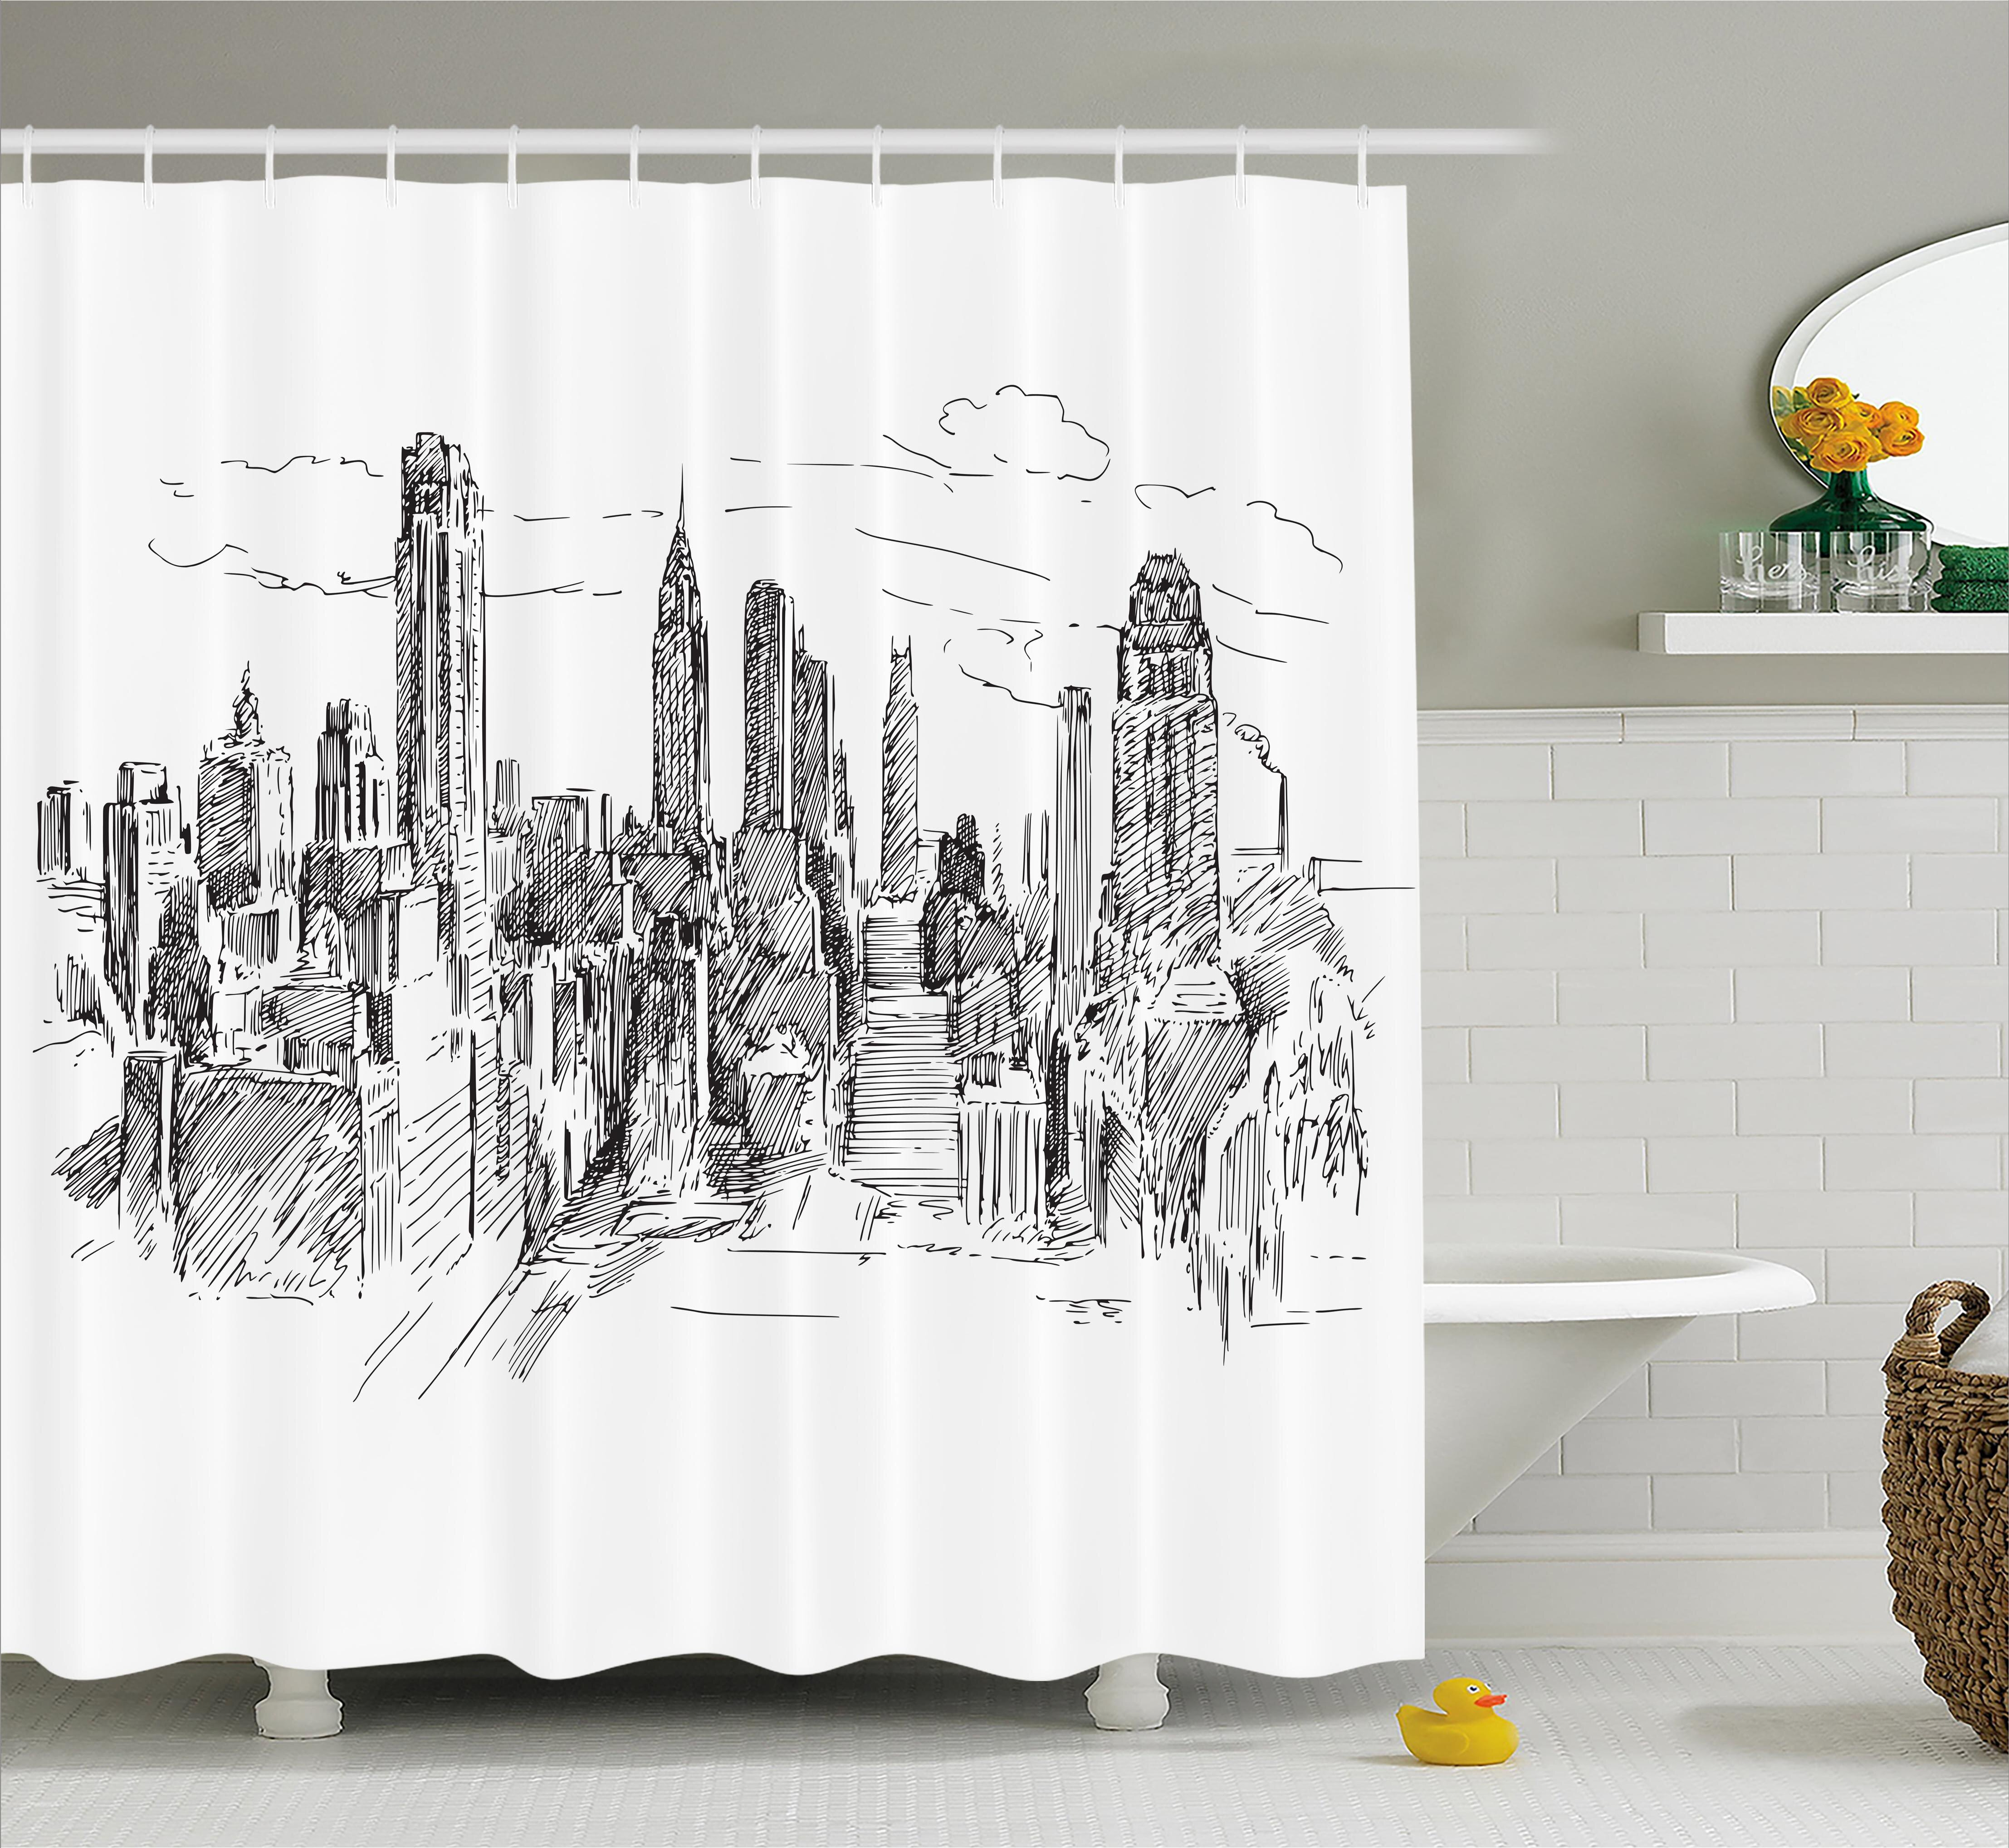 Ebern Designs Blondelle Sketchy NYC Cityscape Shower Curtain